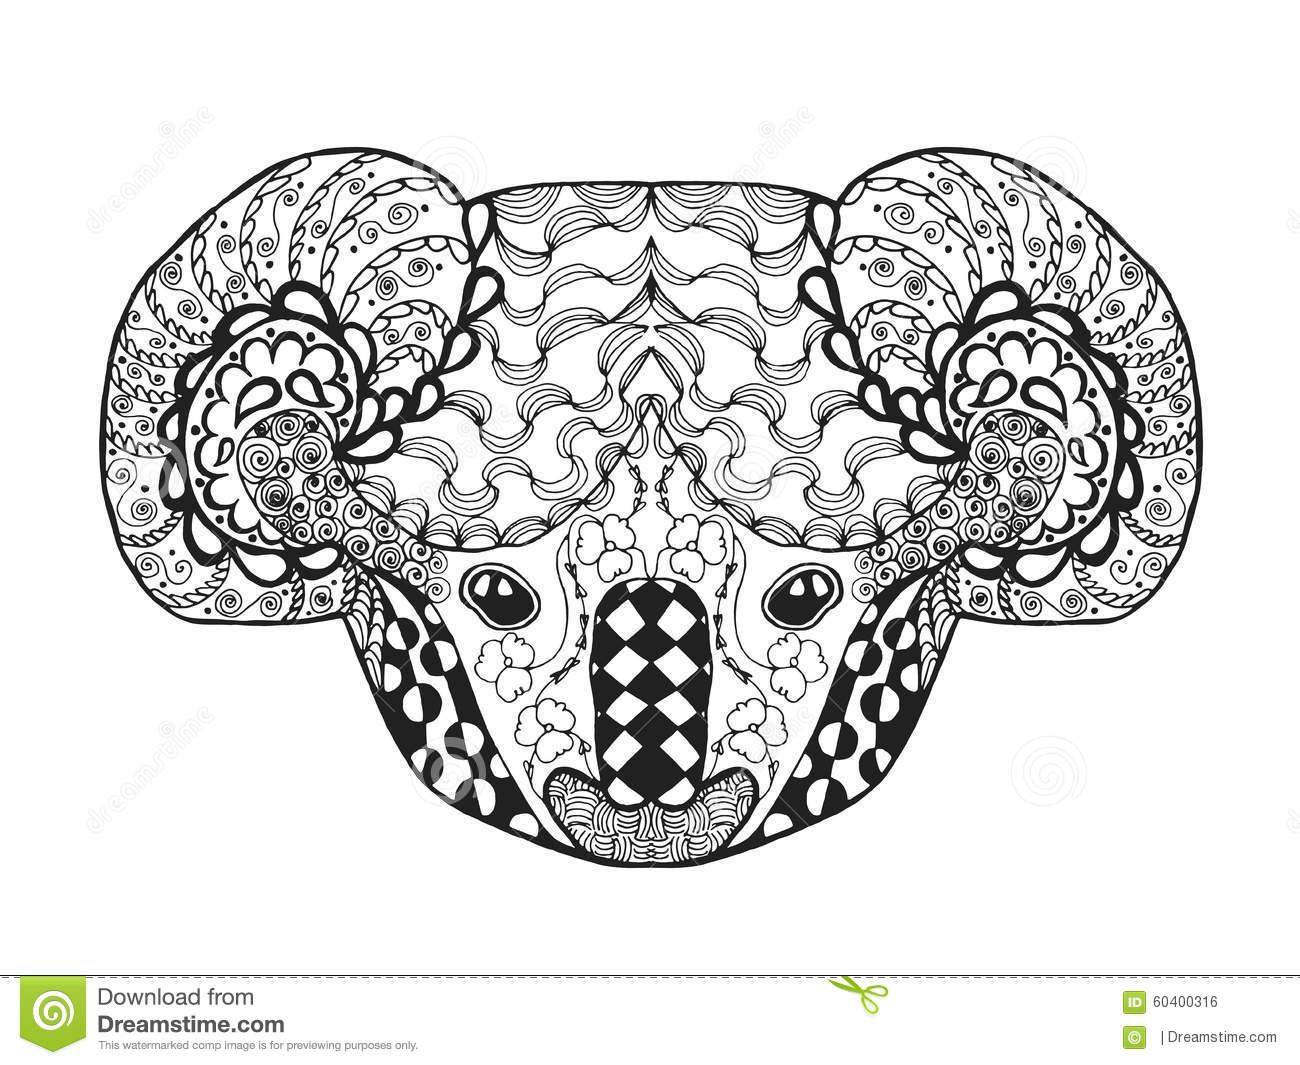 zentangle-stylized-koala-head-sketch-tattoo-t-shirt-adult-antistress ...